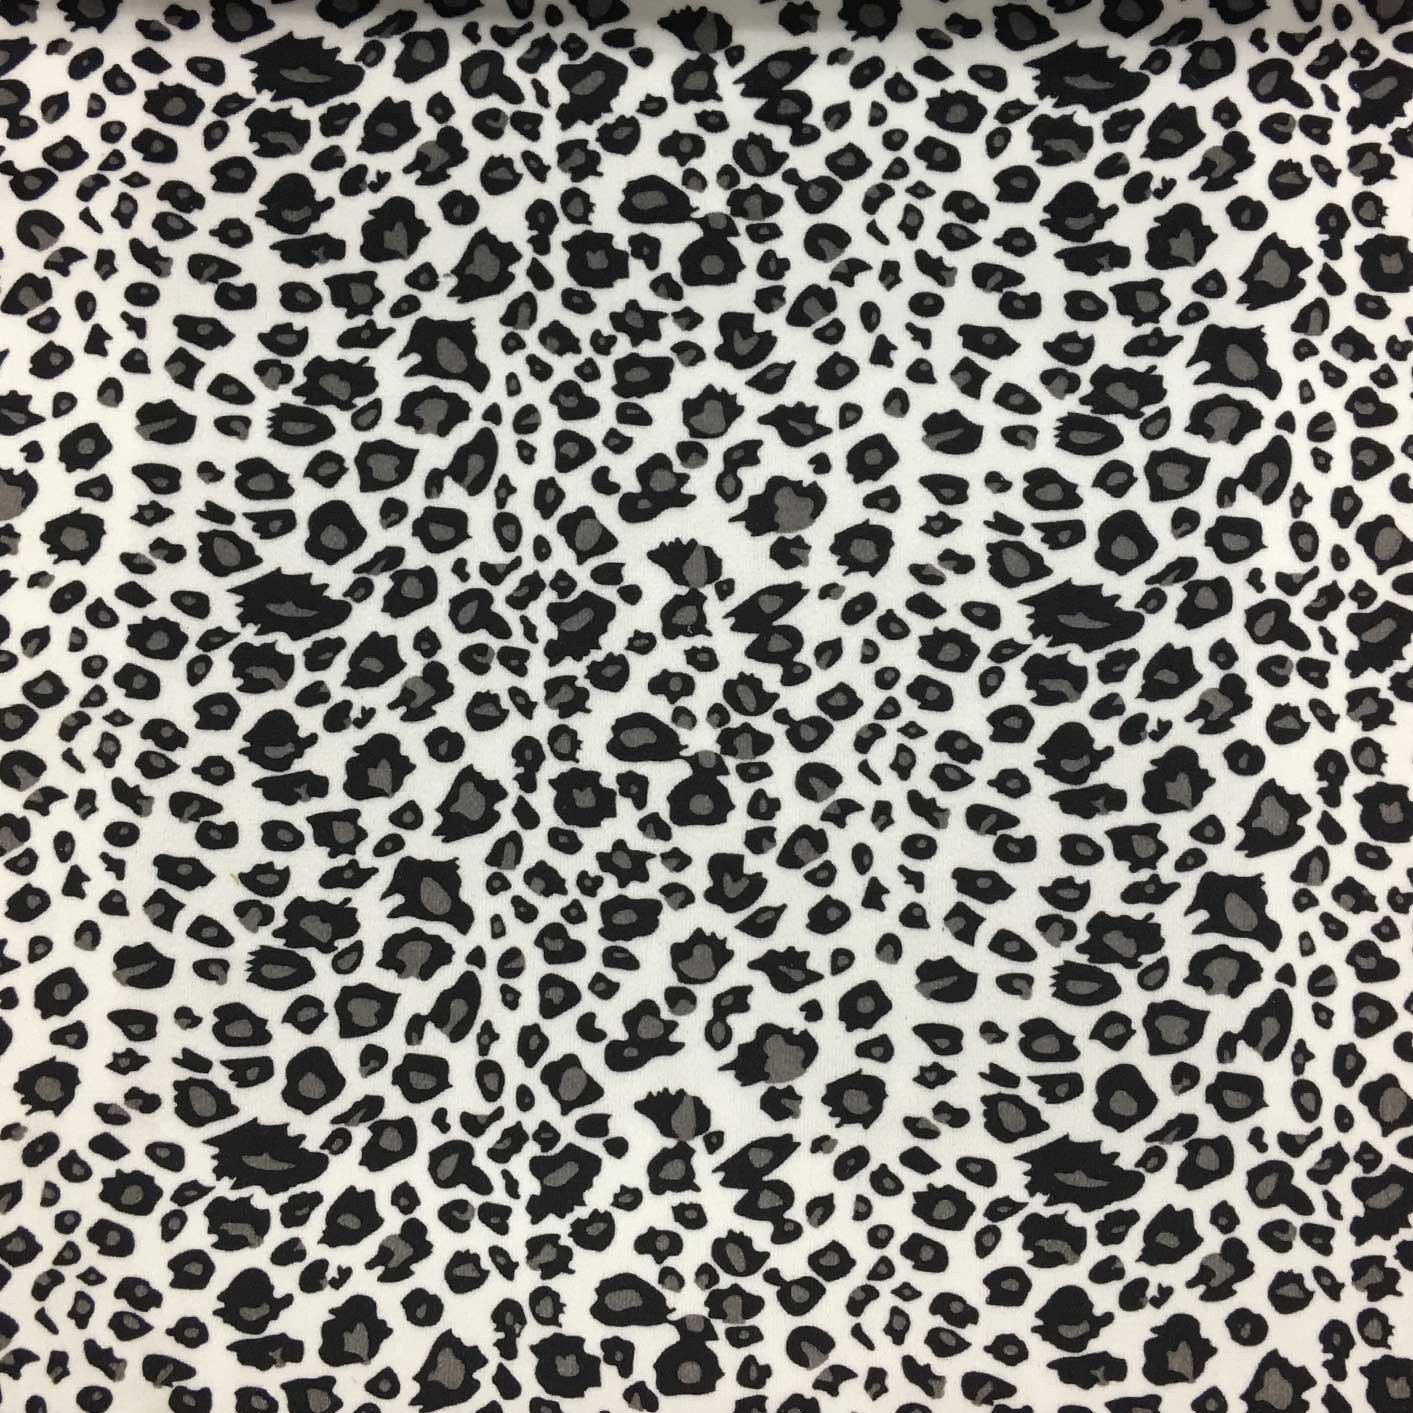 7843a9ac74 Safari - Cheetah - Short Pile Velvet Upholstery Fabric by the Yard